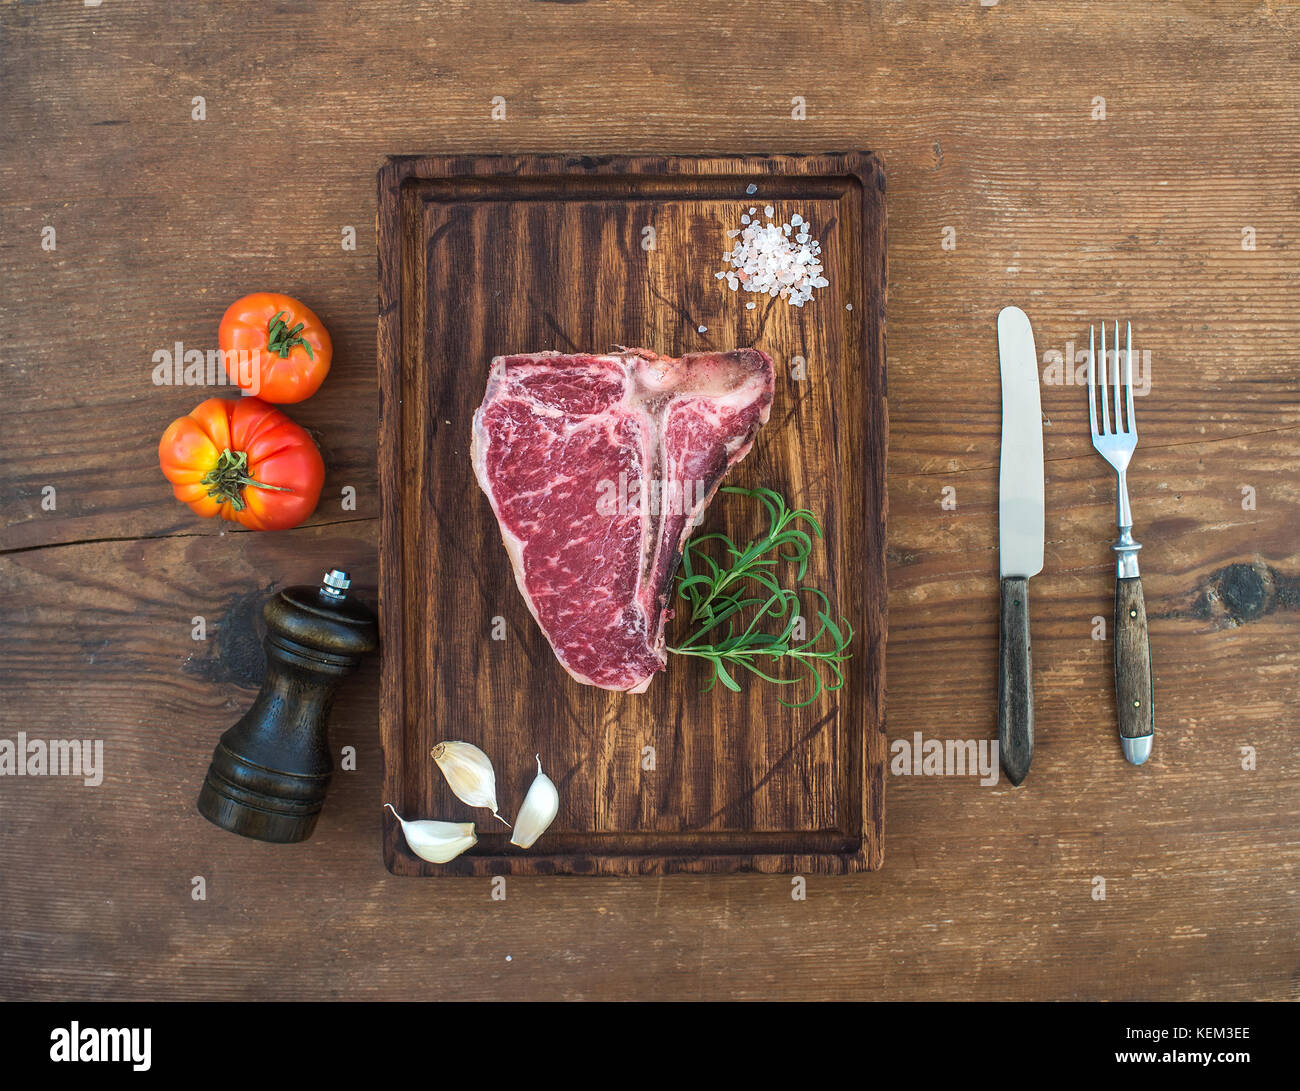 Raw fresh meat t-bone steak with garlic cloves, tomatoes, rosemary and salt on serving board over rustic wooden Stock Photo